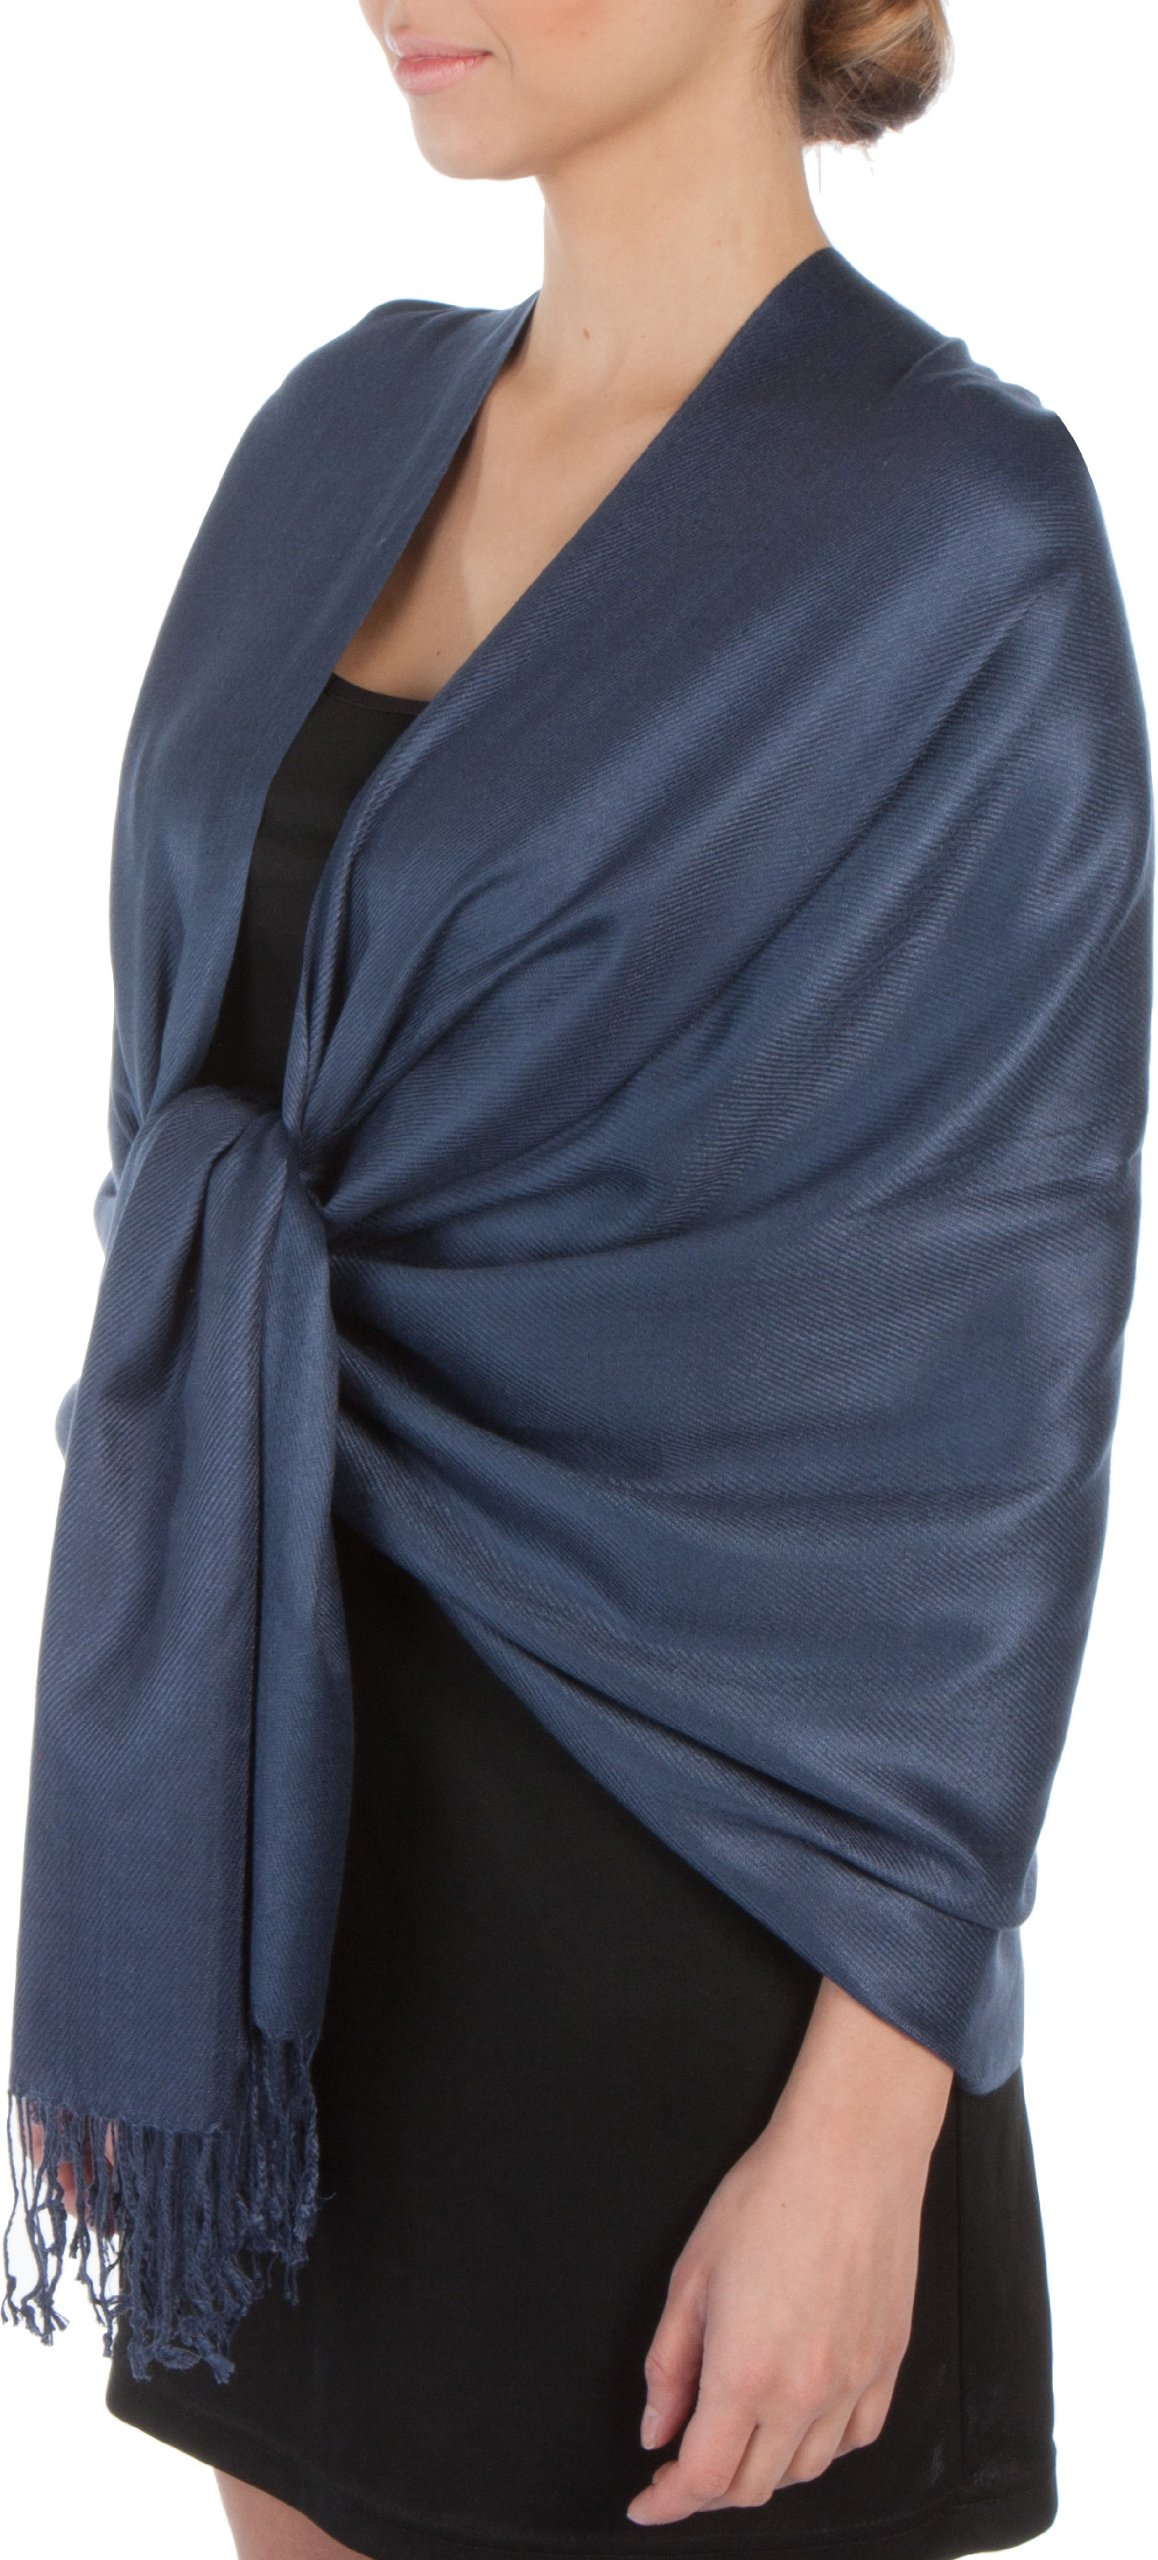 Sakkas Large Soft Silky Pashmina Shawl Wrap Scarf Stole in Solid Colors - Navy Blue